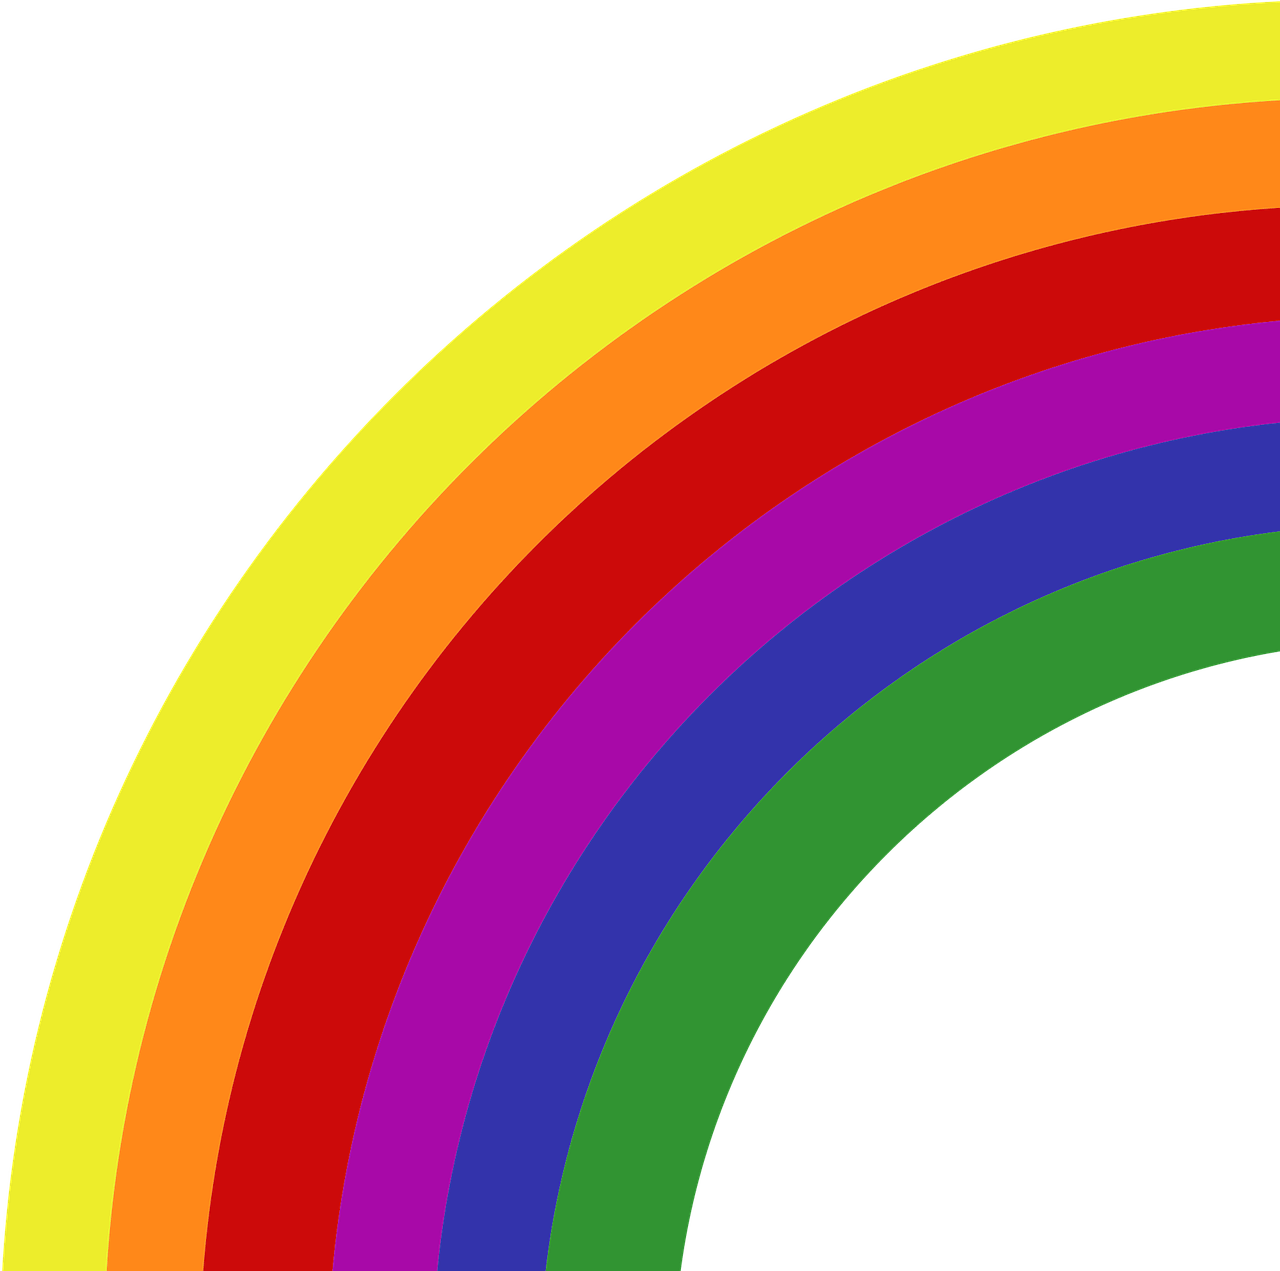 Rainbow png tumblr. Innovative pictures of colours